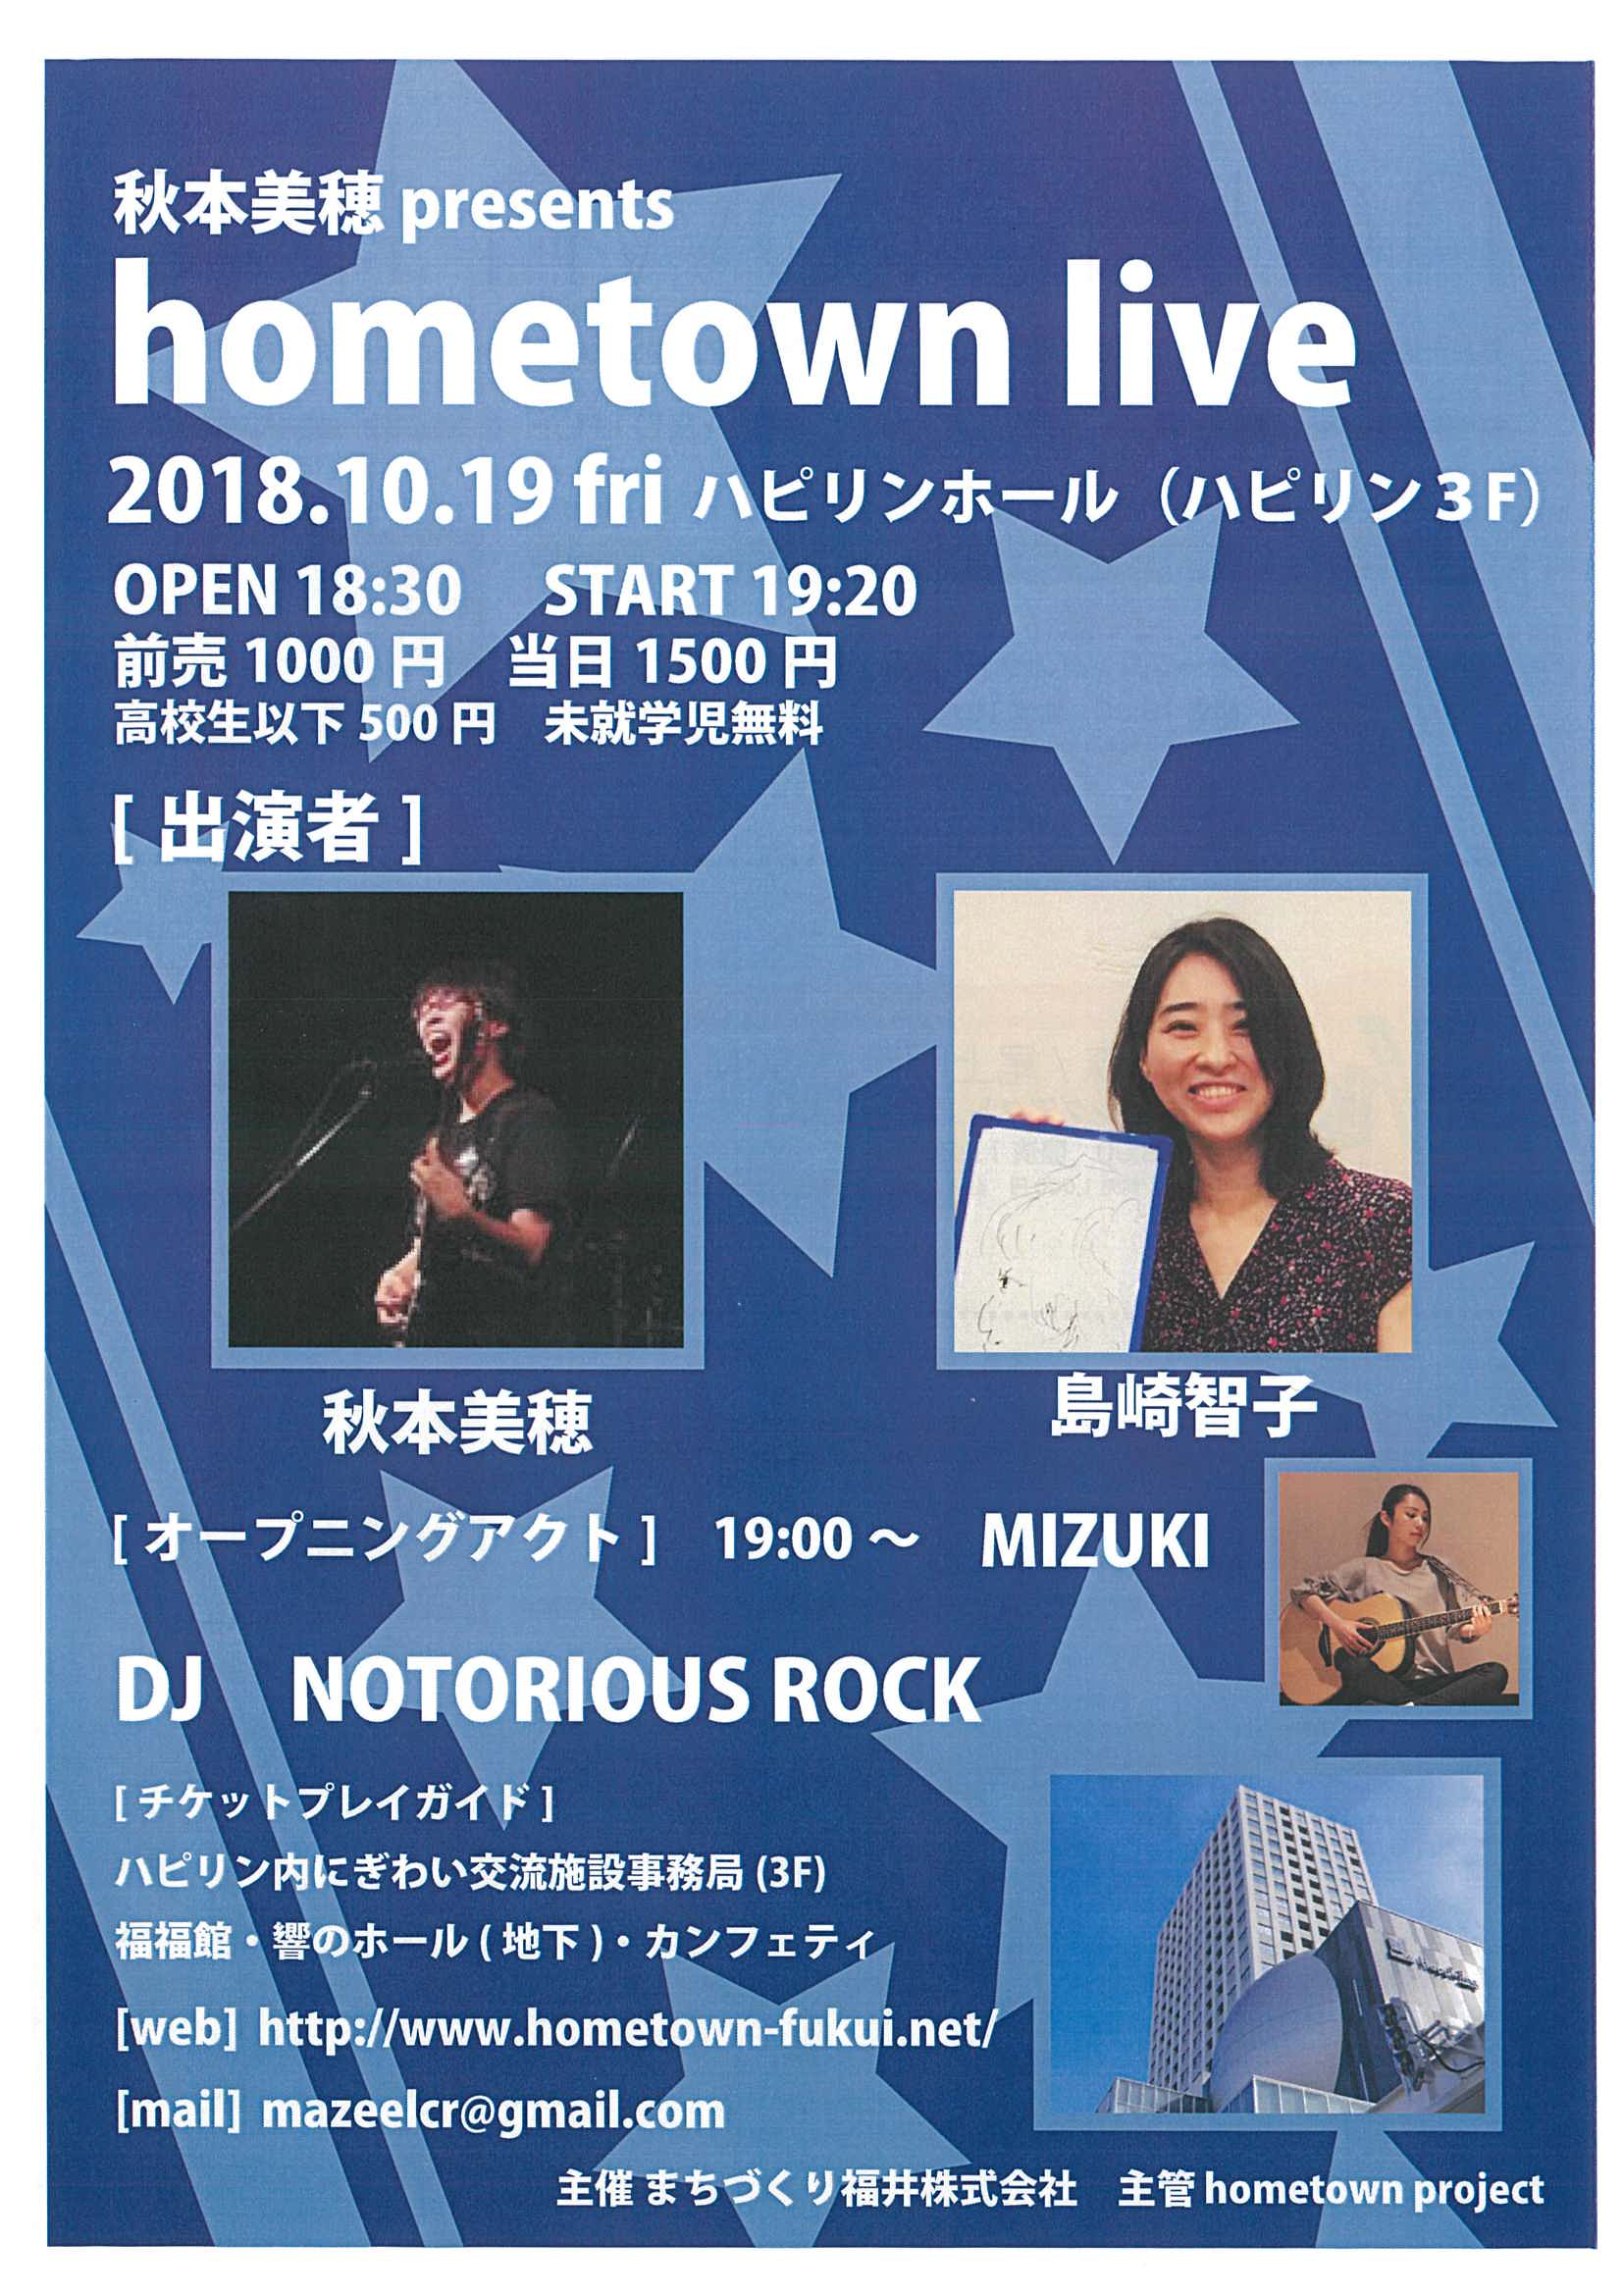 『秋本美穂 presents hometown live』